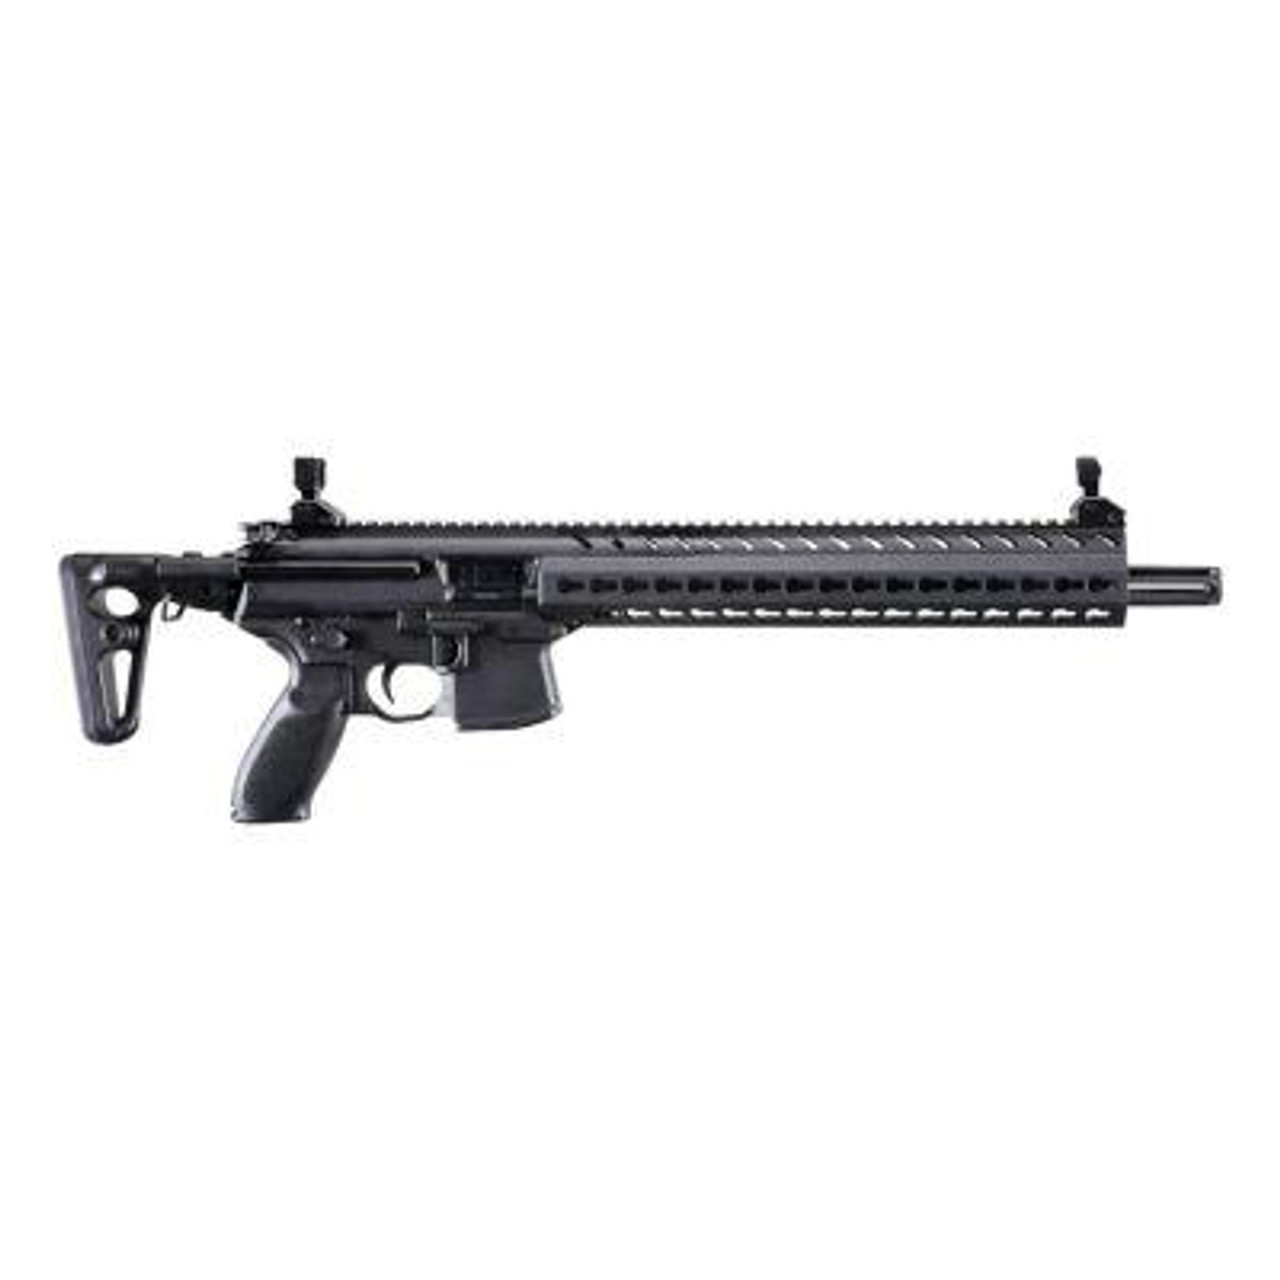 "Sig Sauer MPX Semi-Auto Carbine Version 16"" Barrel 9mm 5 Rounds"